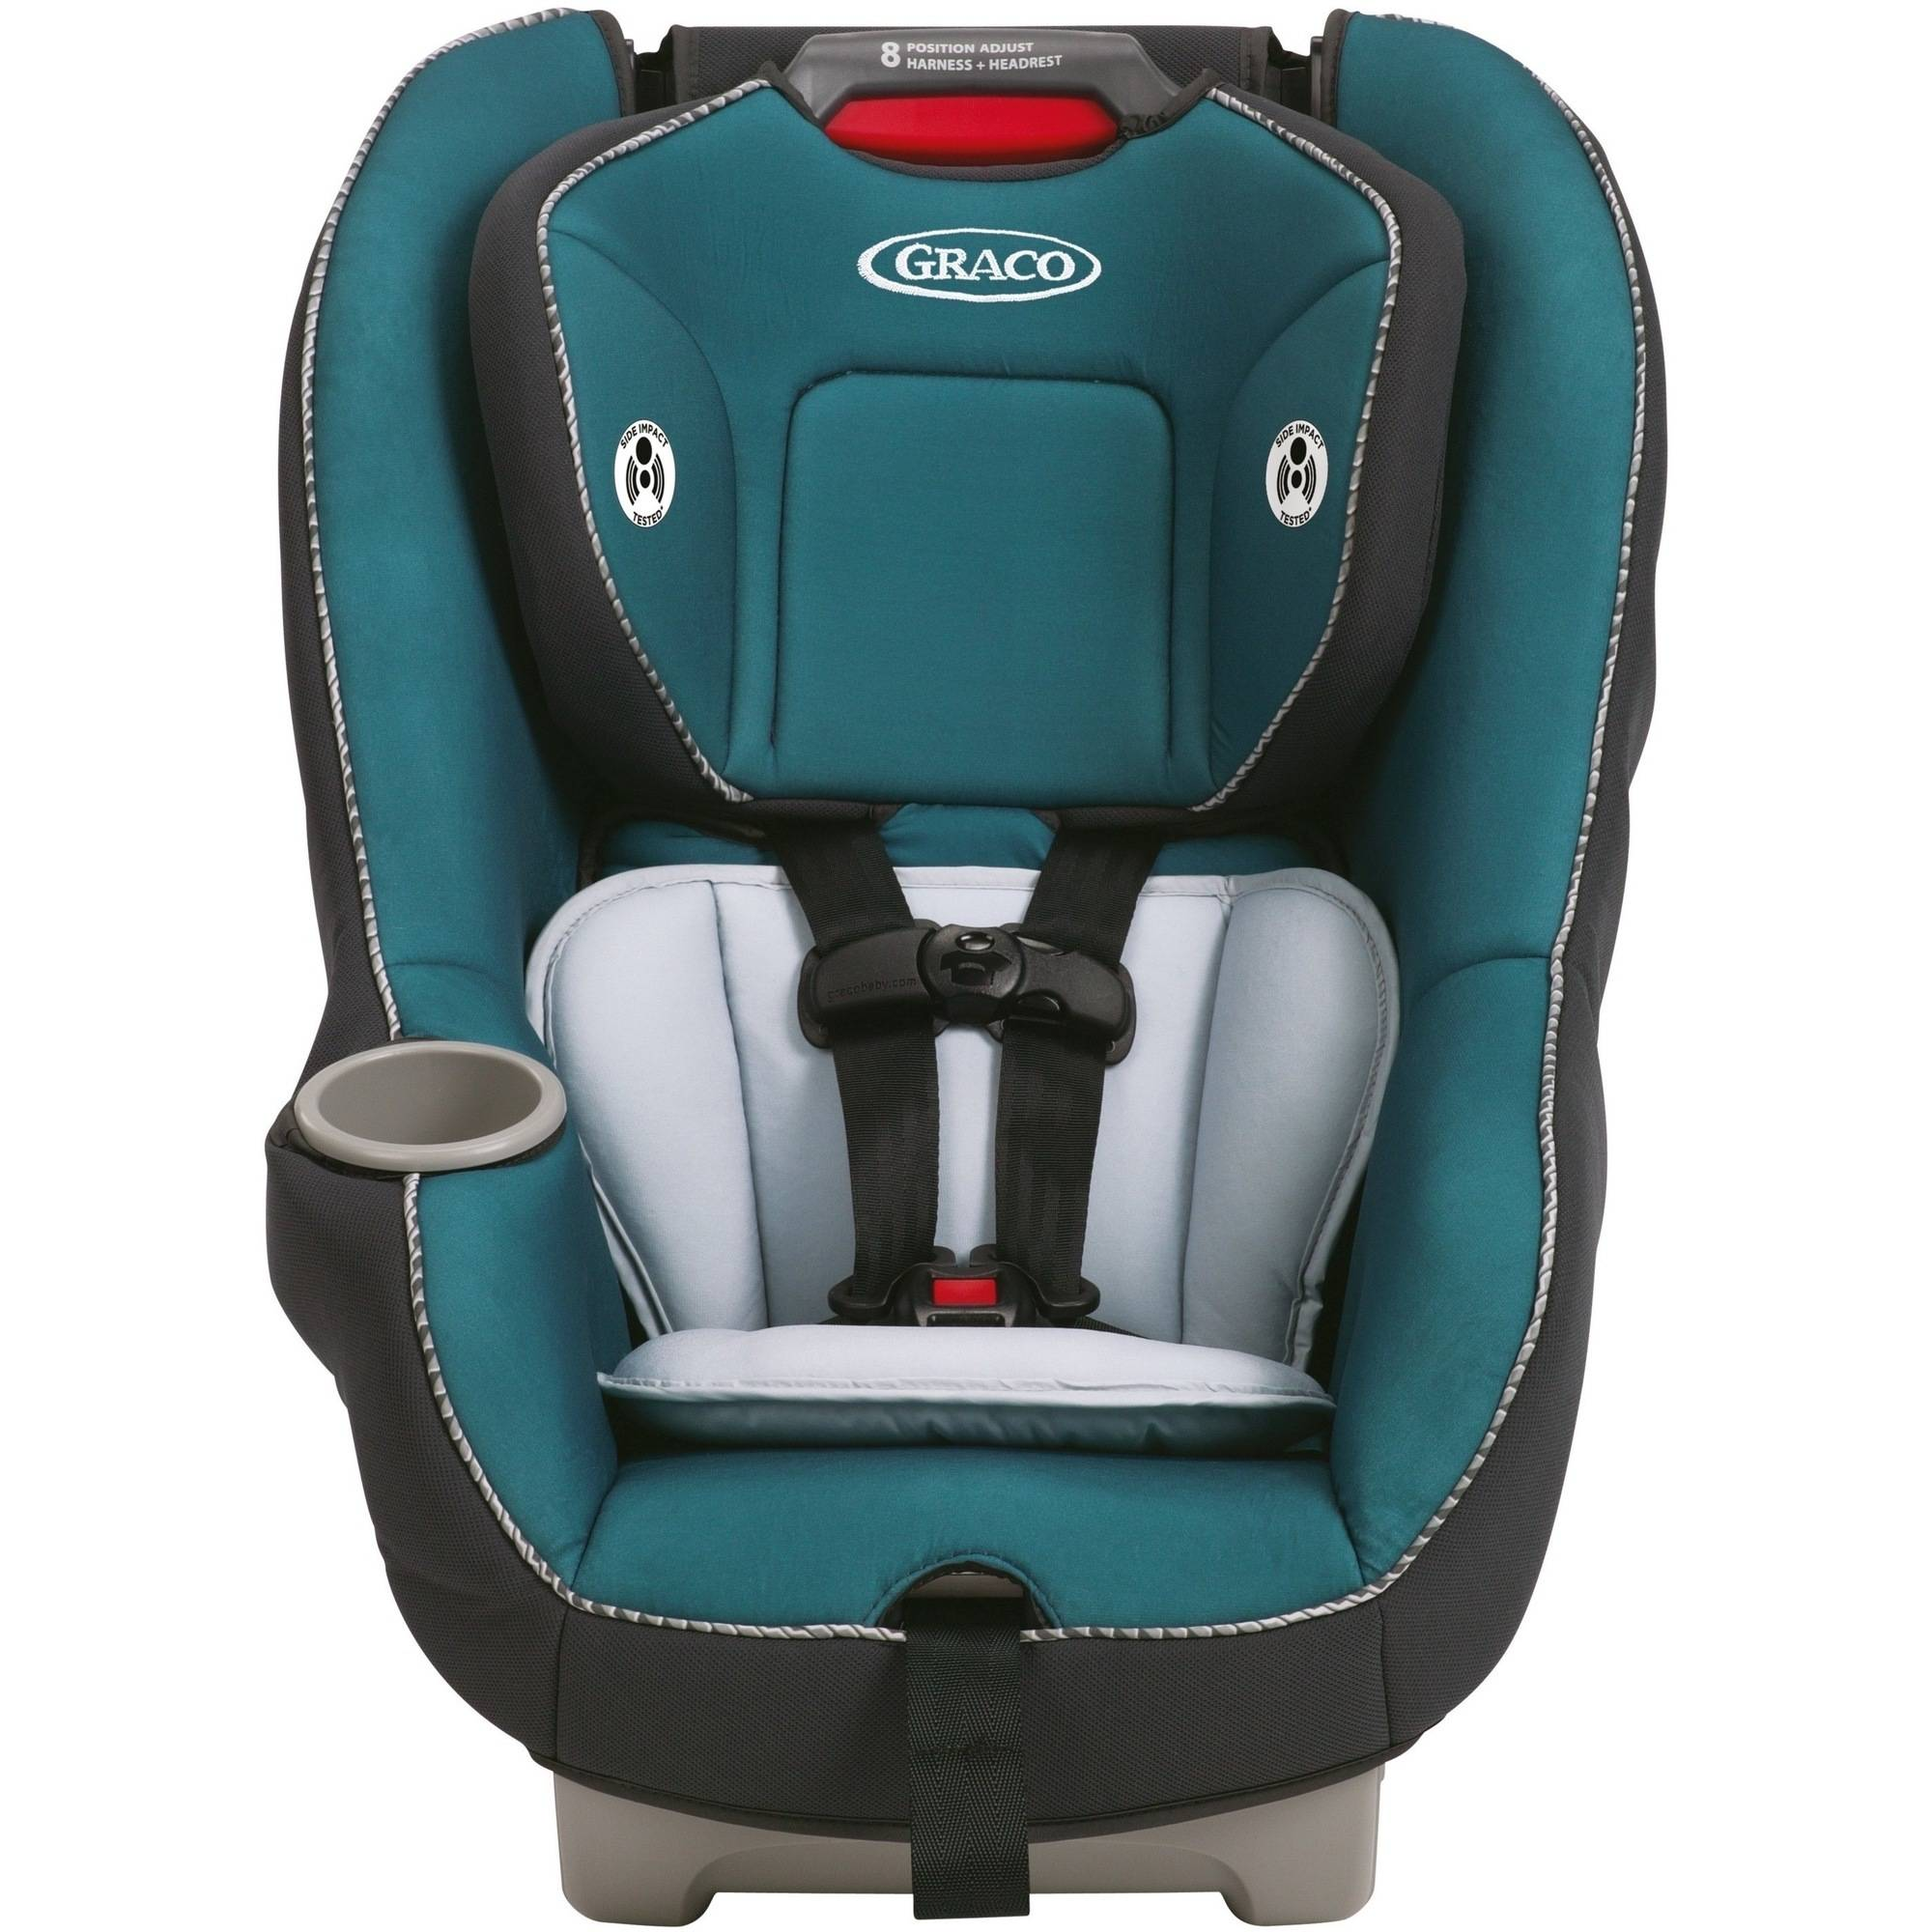 baby car seat strap covers target cars image 2018. Black Bedroom Furniture Sets. Home Design Ideas